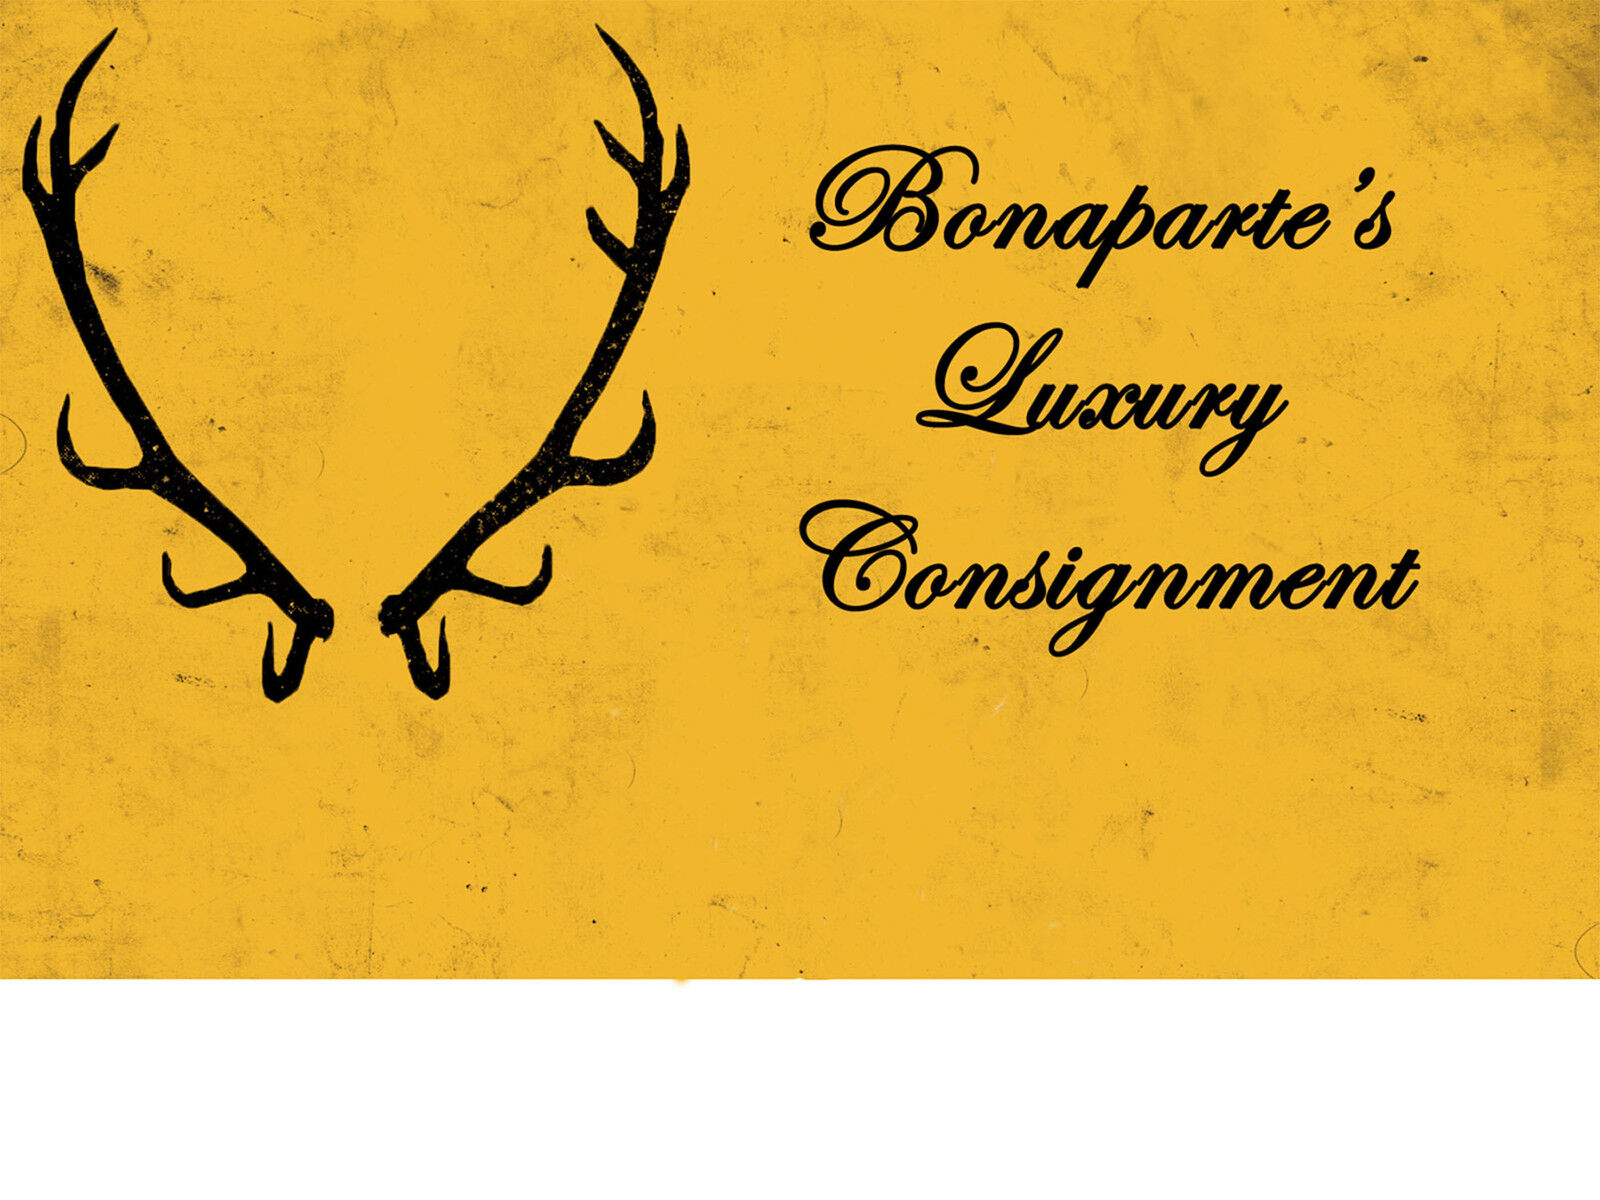 Bonaparte's Luxury Consignment